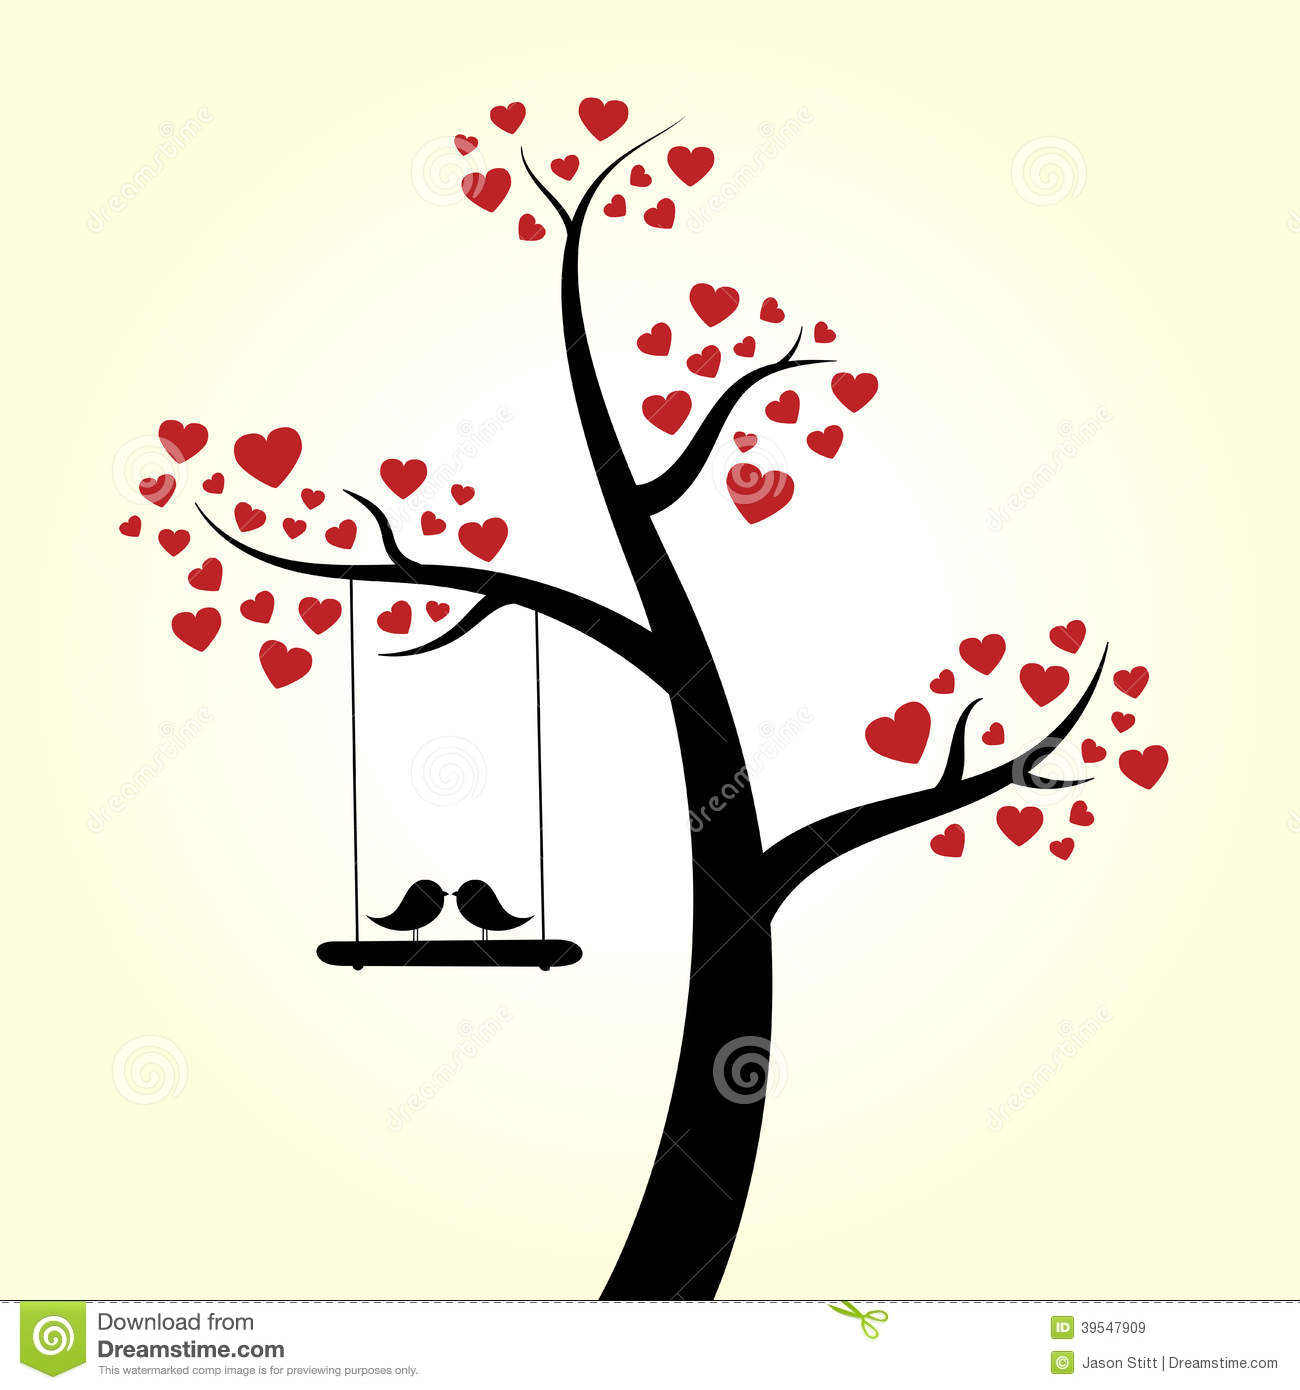 Love Heart Tree Stock Vector - Image: 39547909